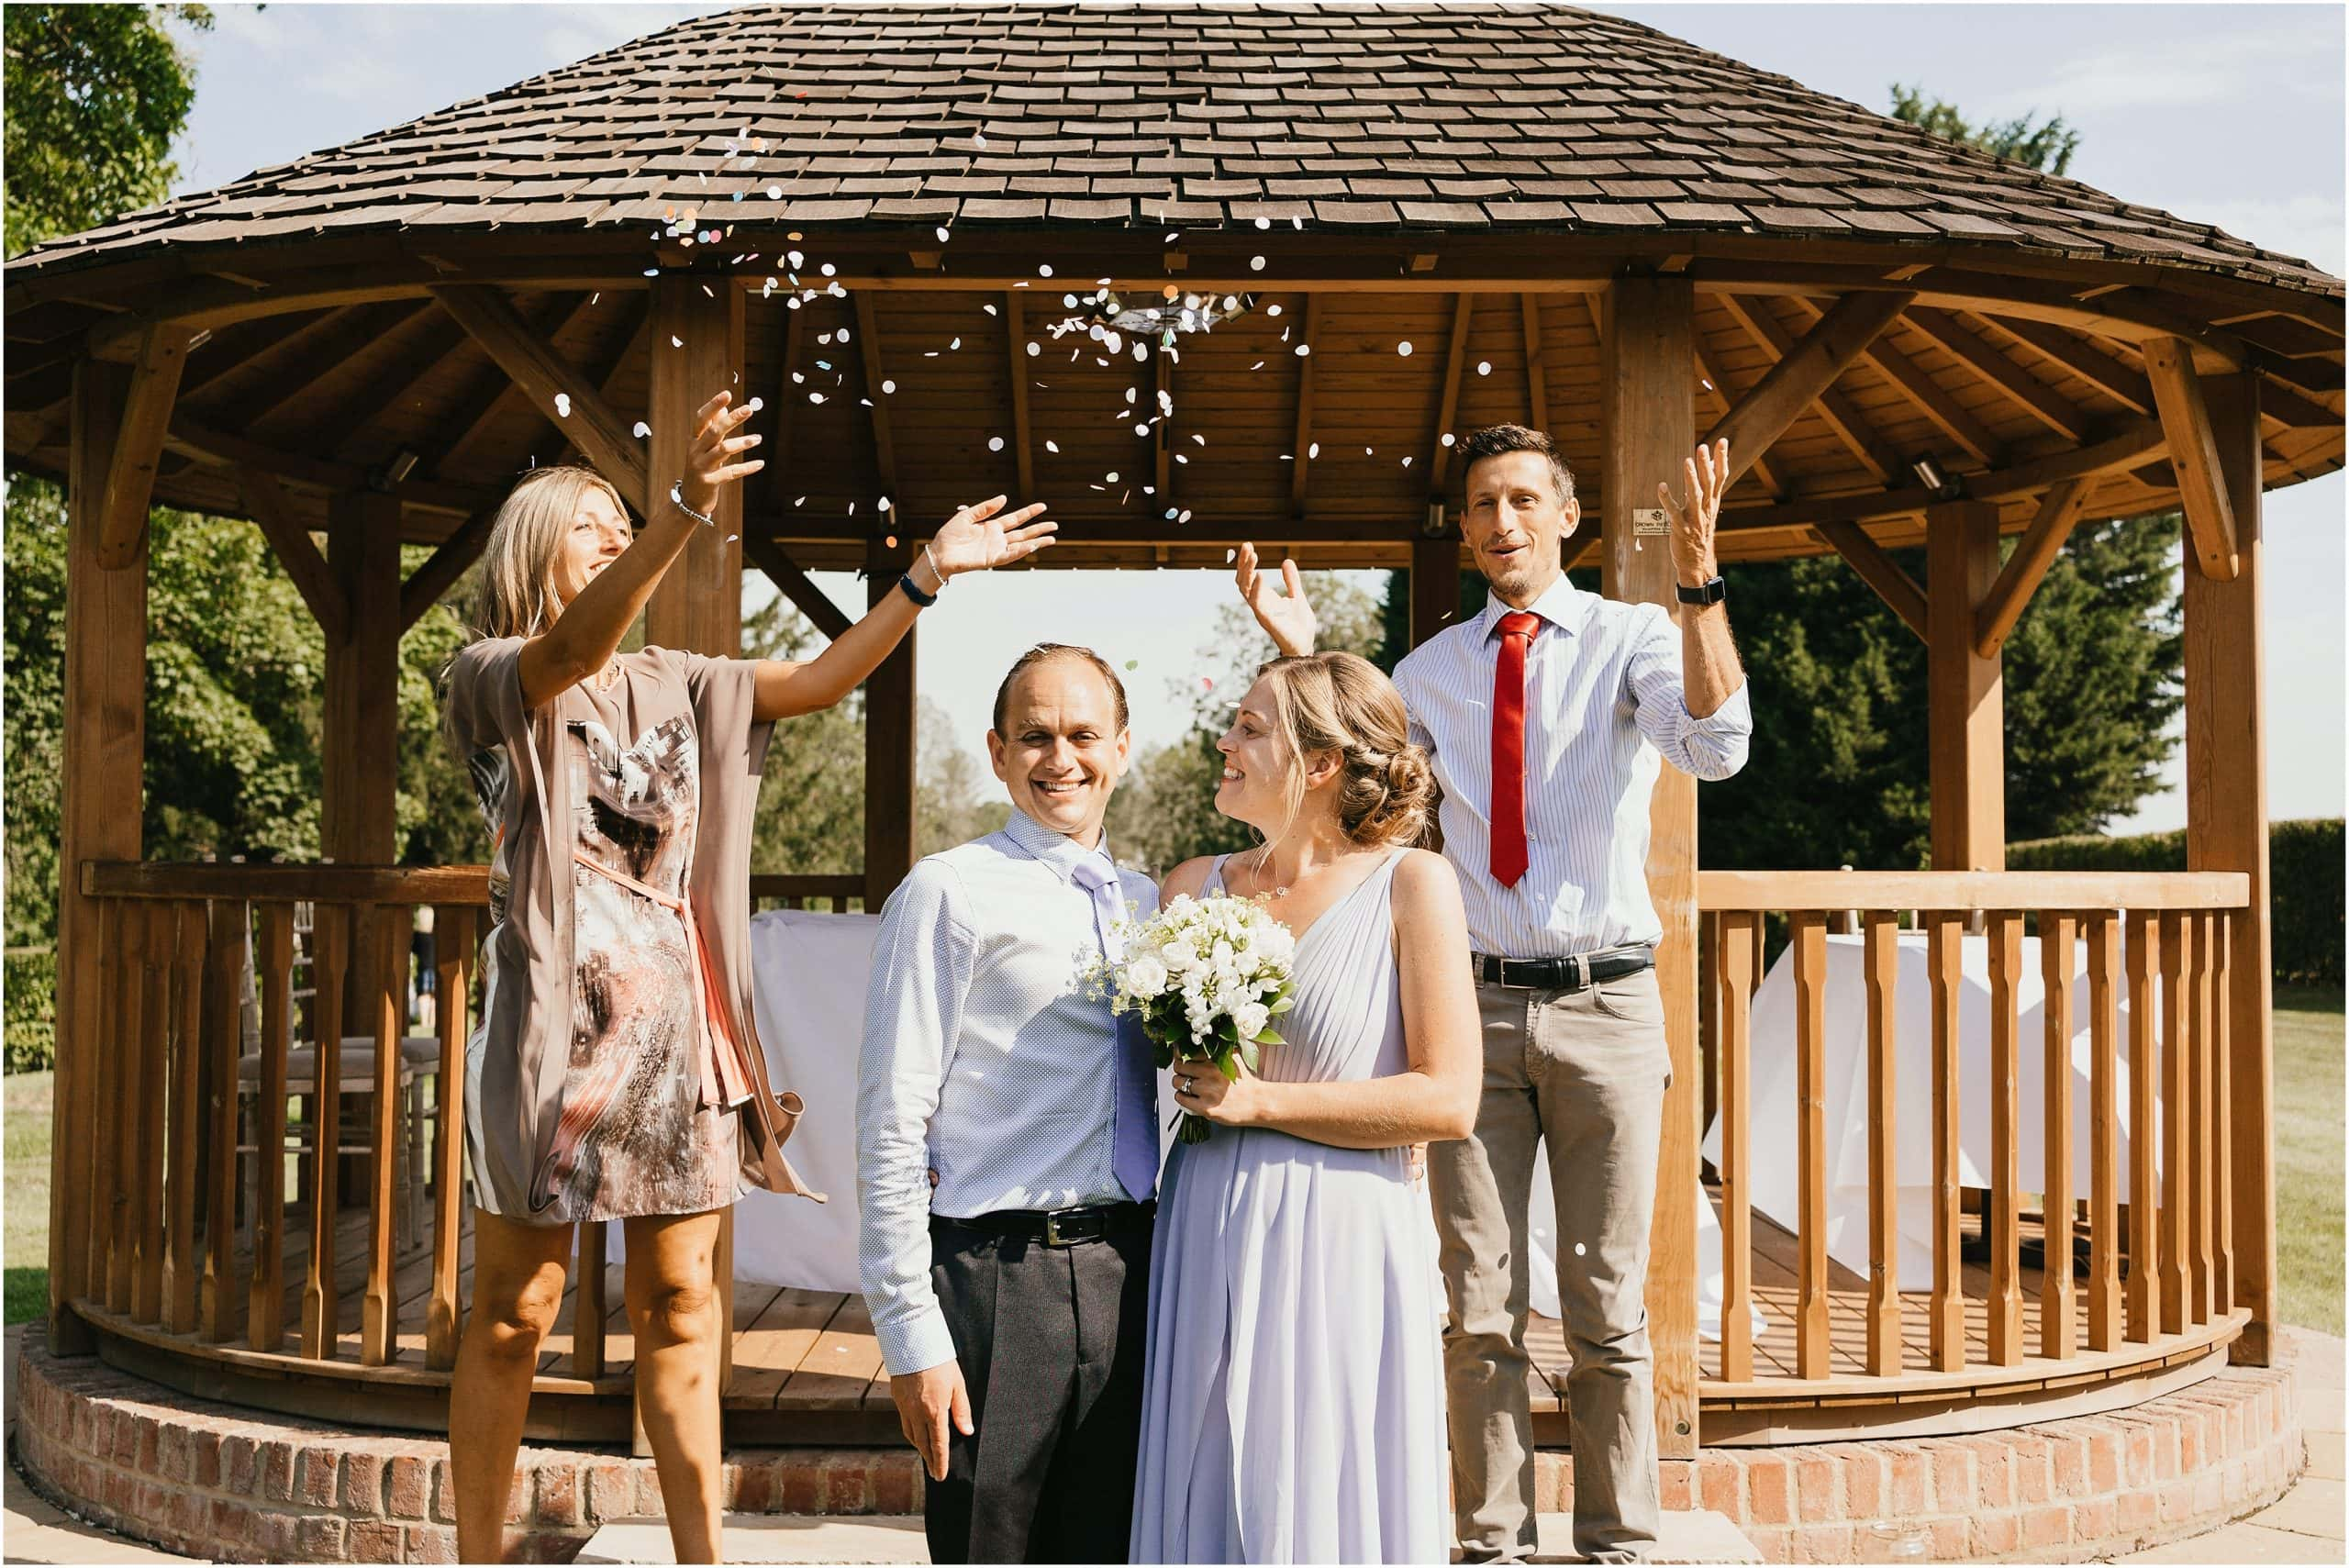 Small wedding of four people